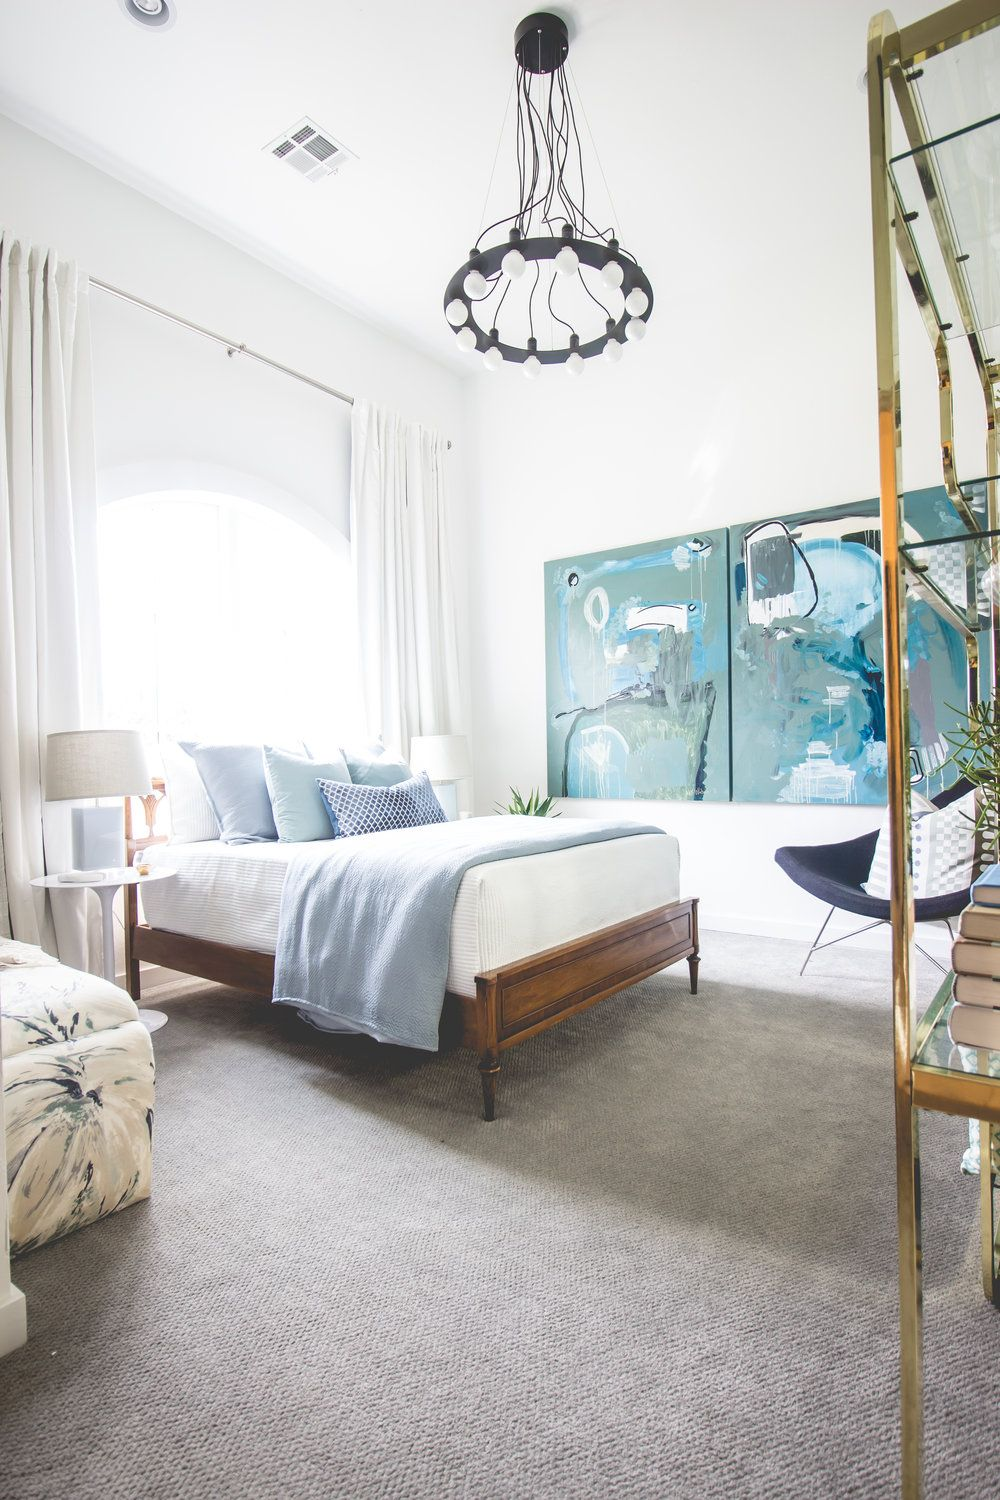 Eclectic White And Blue Bedroom Inspiration Interior Design By Ashley S Whiteside Photo Zach Lucero